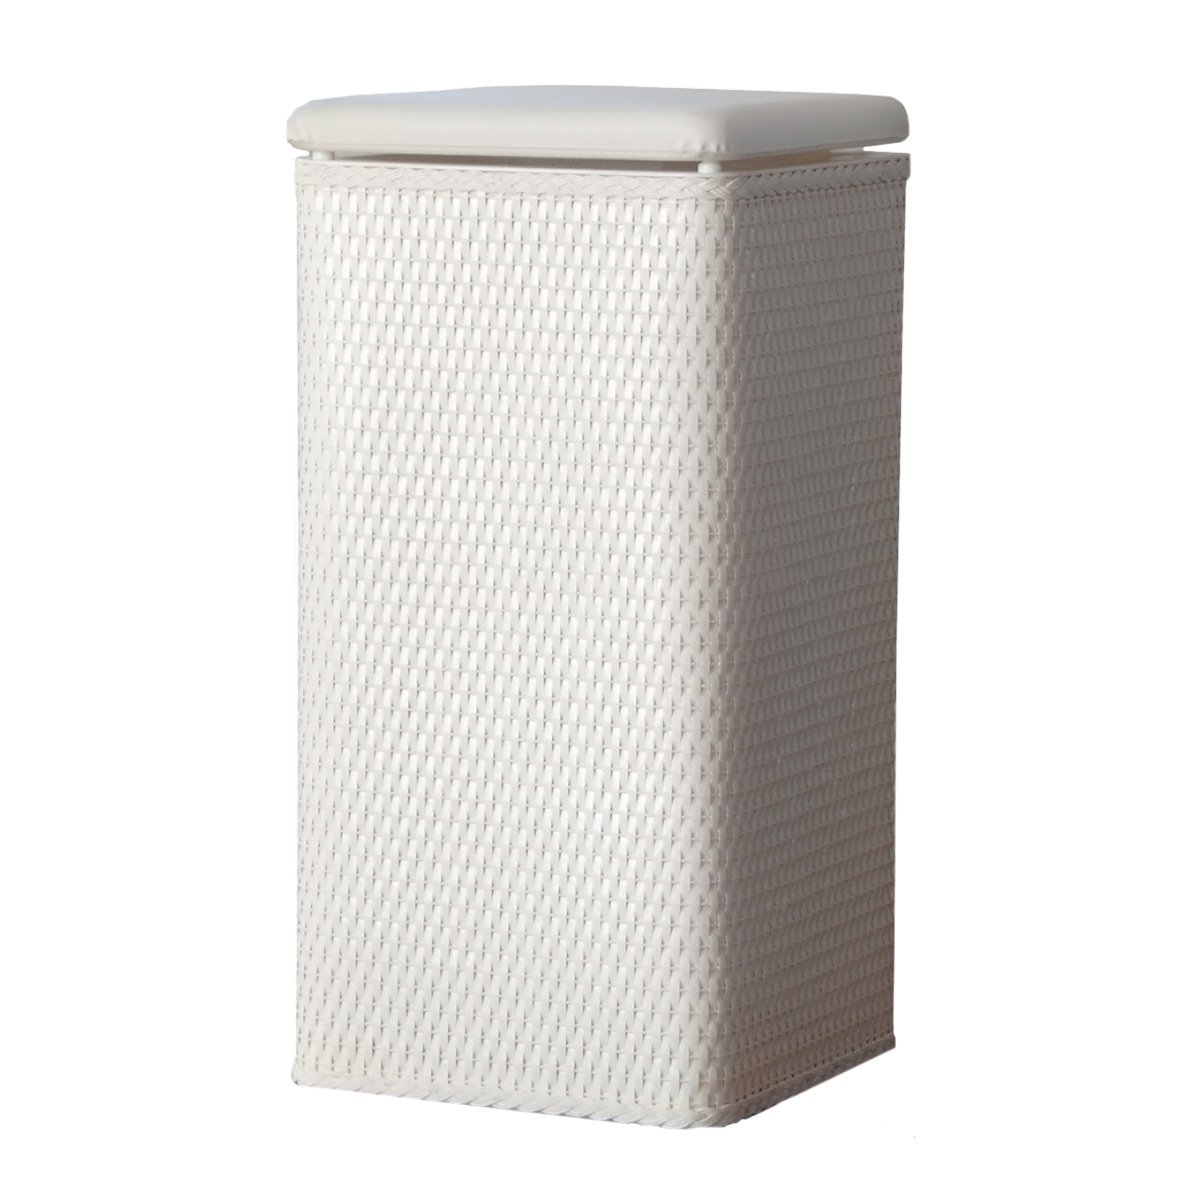 Lamont home carter apartment wicker laundry hamper with coordinating padded v ebay - White wicker clothes hamper ...